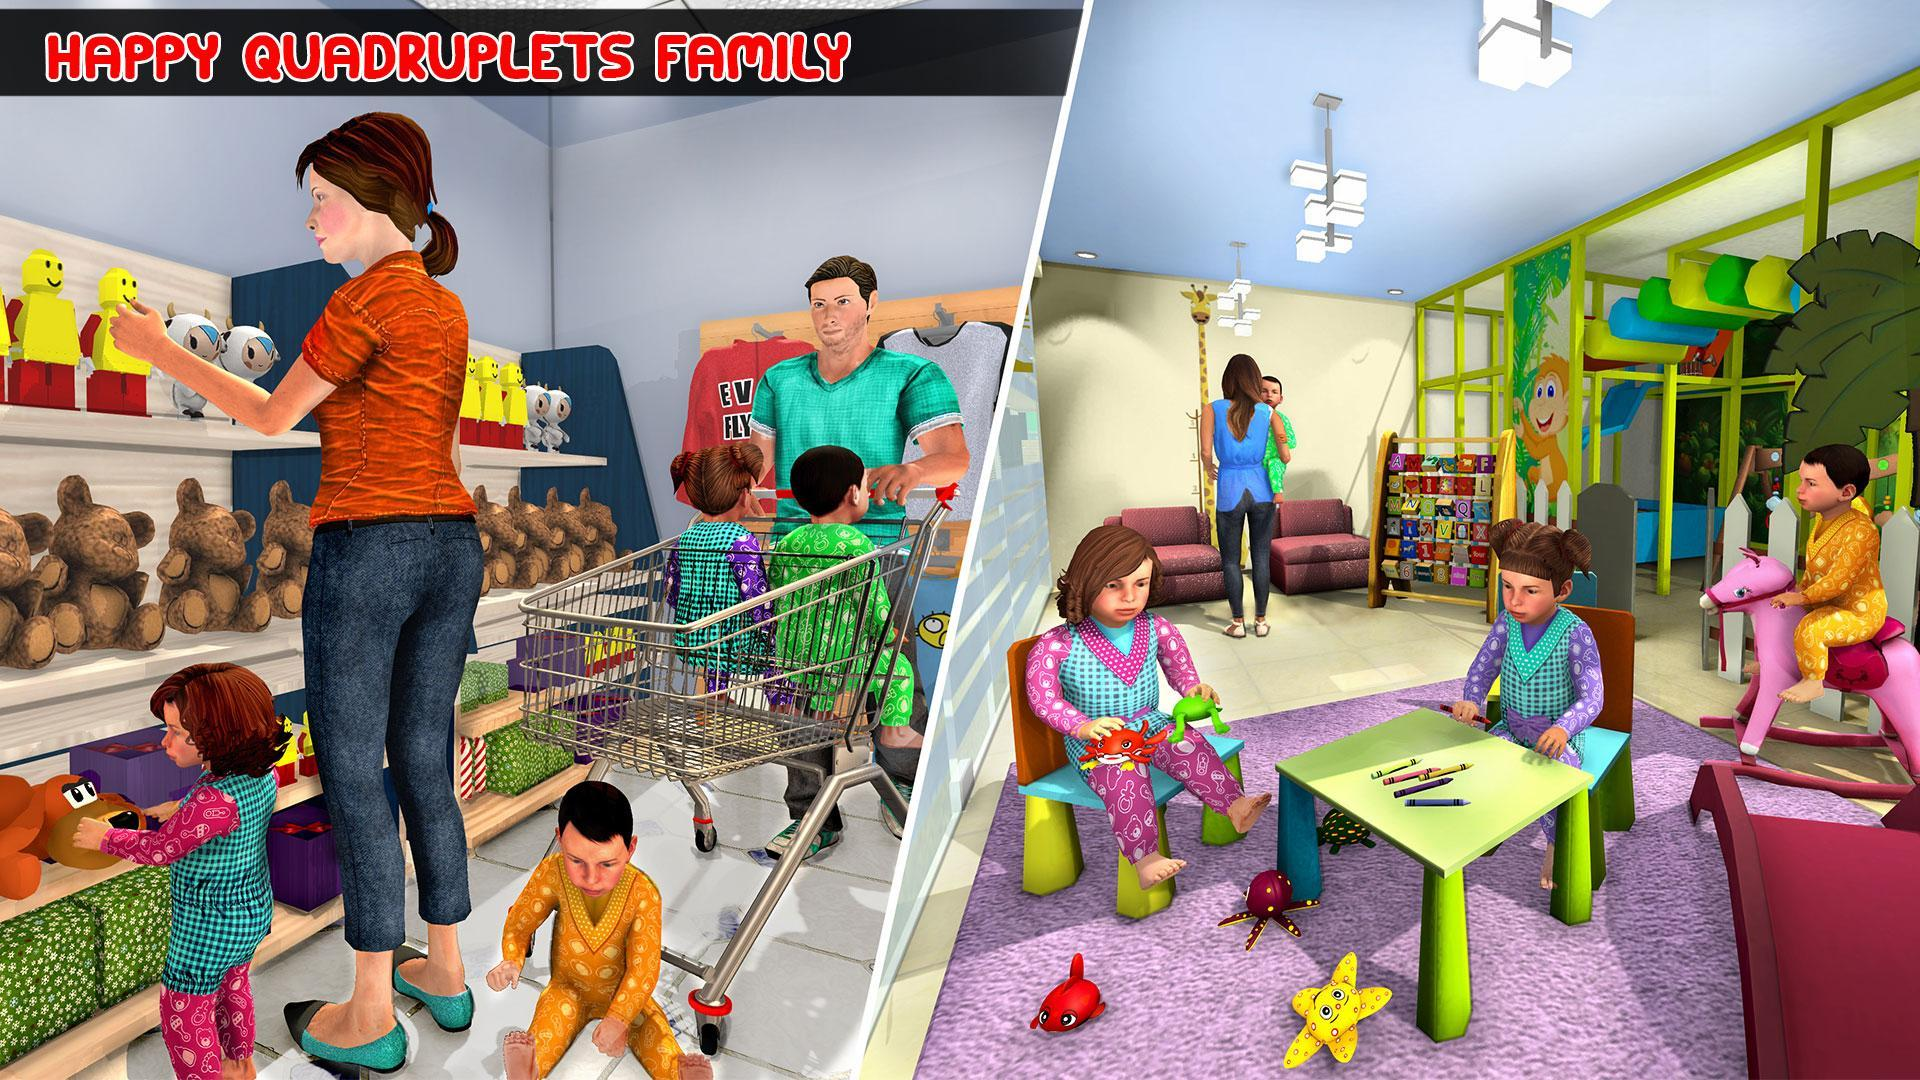 Virtual Mother Baby Quadruplets Family Simulator 1.0.9 Screenshot 11